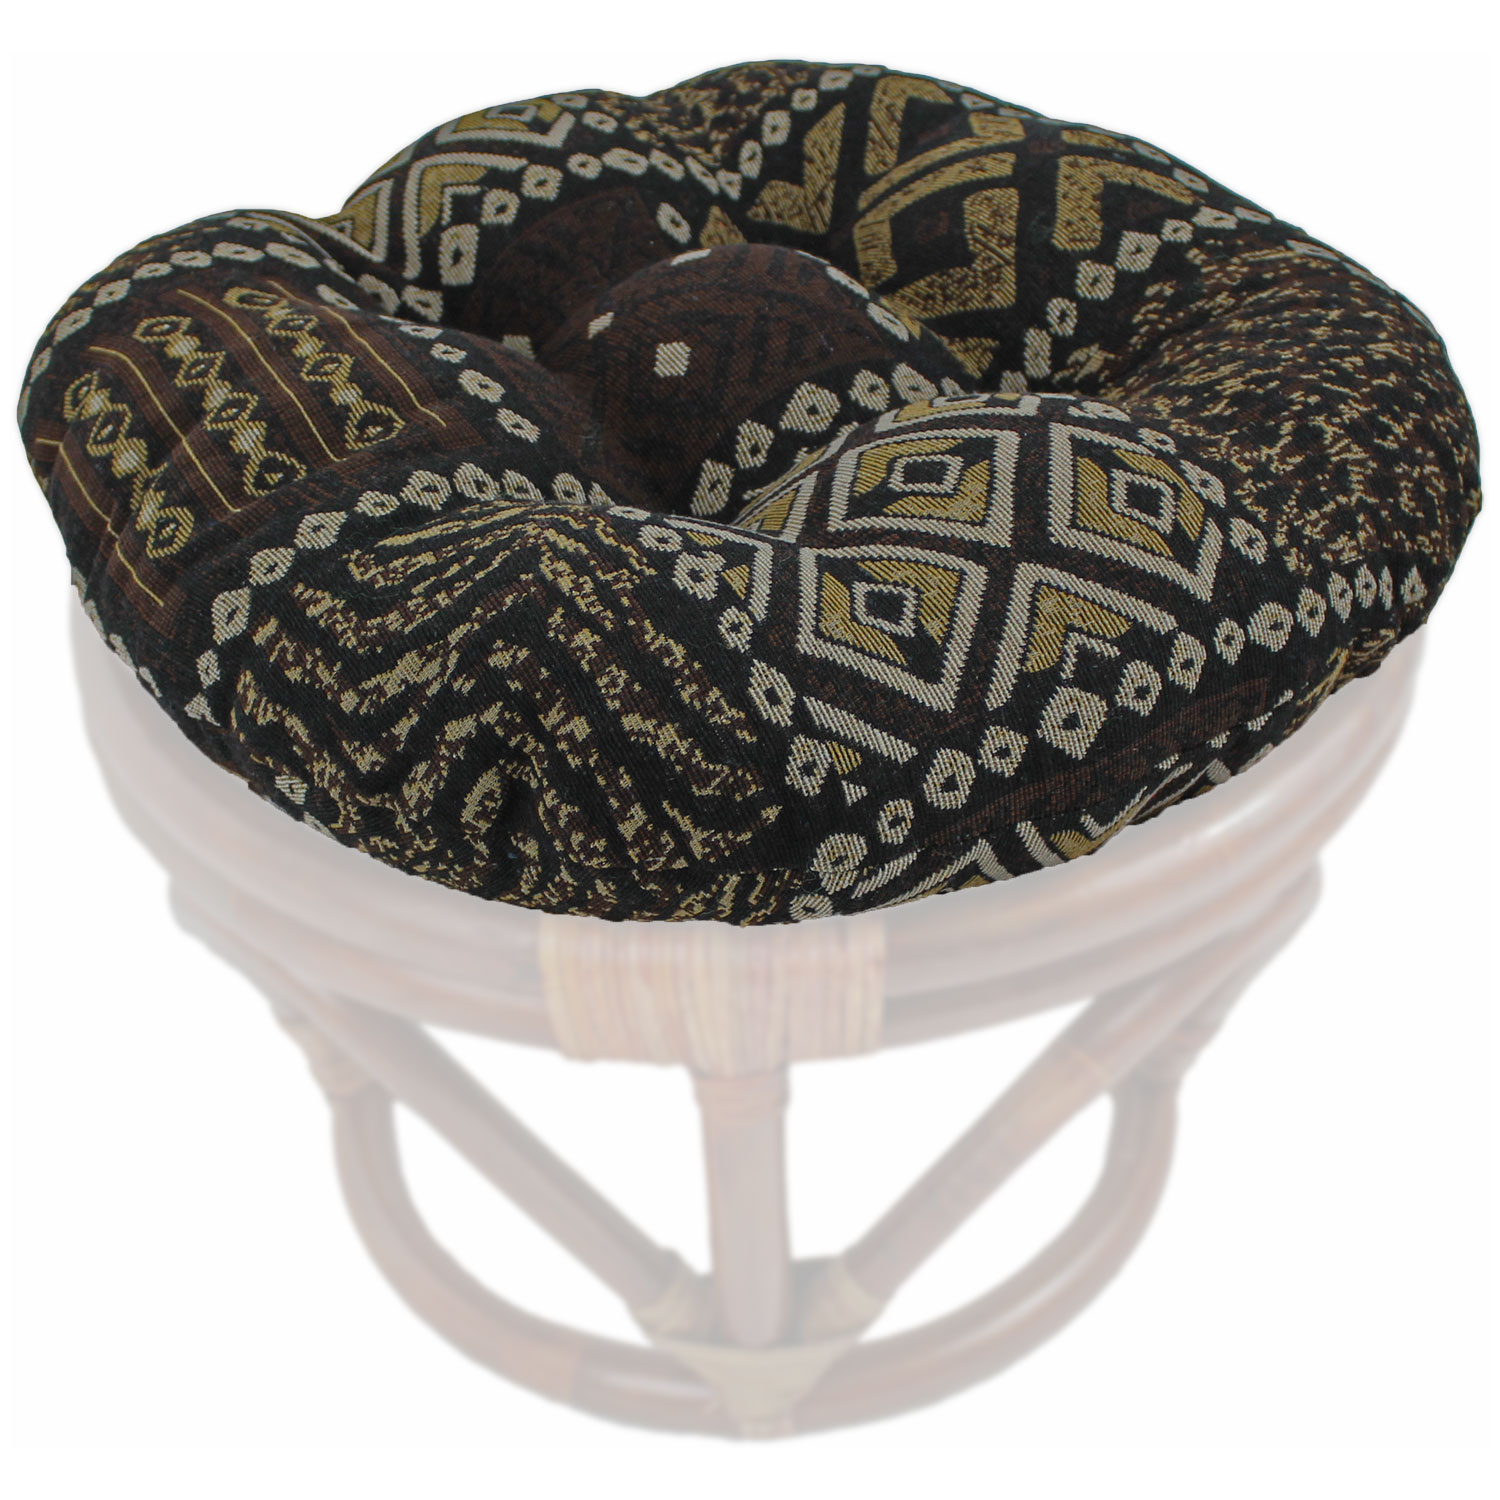 Tapestry Fabric 18 Inch Tufted Ottoman Cushion - BLZ-93301-T